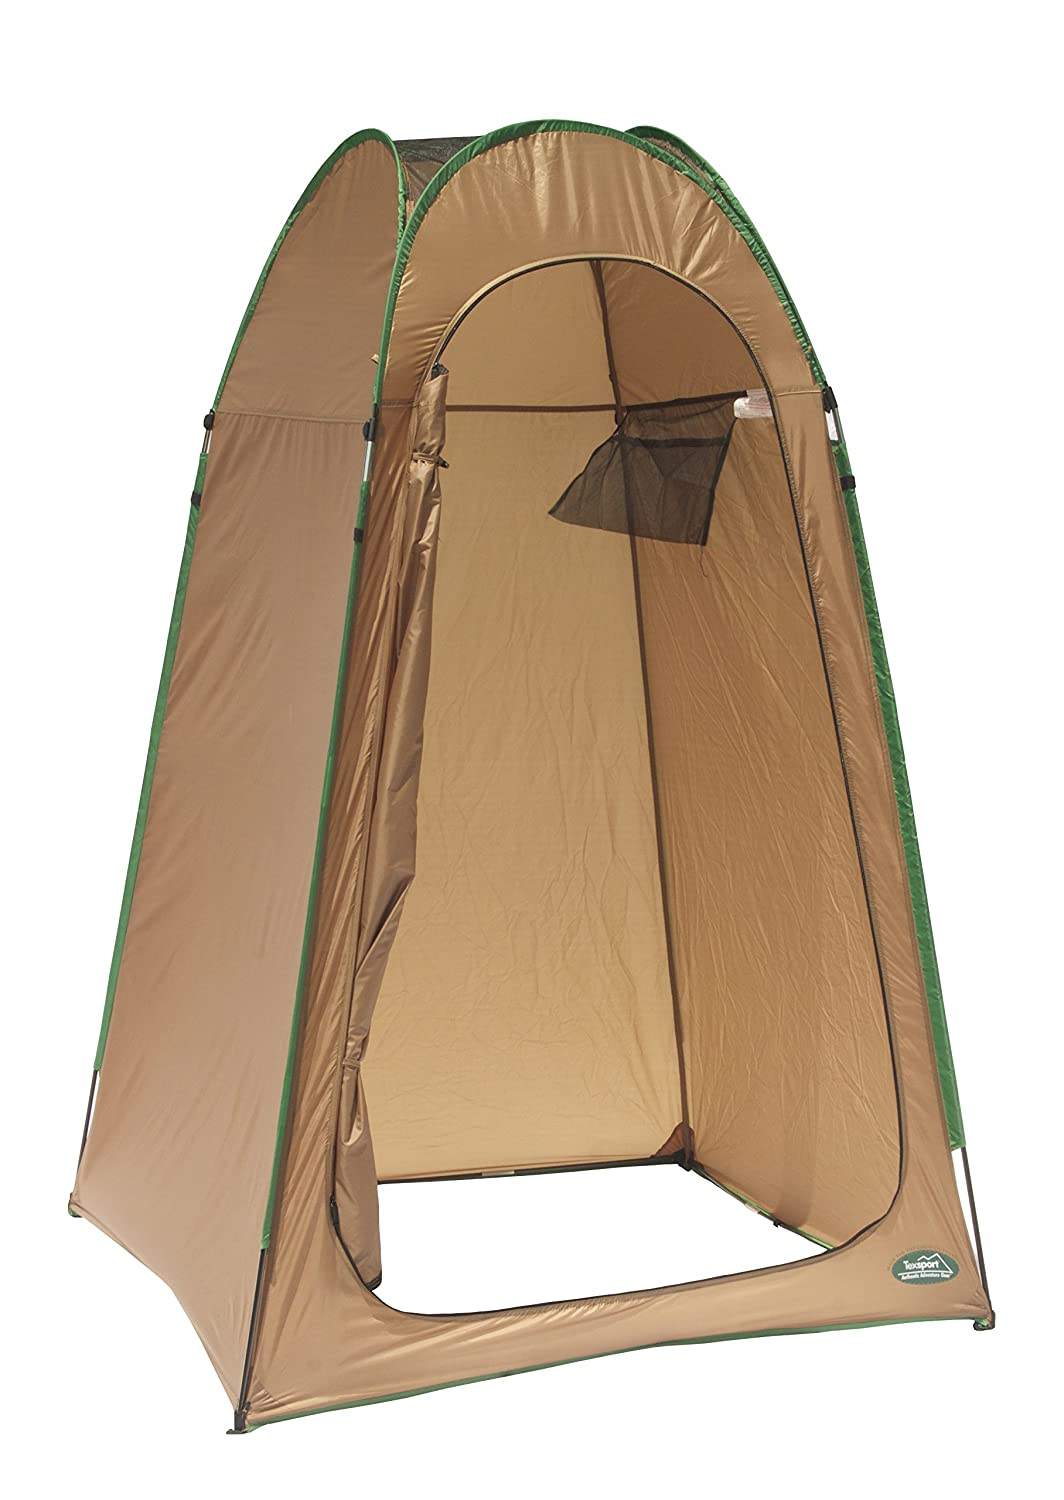 Amazon.com Texsport Hilo Hut II Portable Outdoor Changing Room Privacy Shelter Sports u0026 Outdoors  sc 1 st  Amazon.com & Amazon.com: Texsport Hilo Hut II Portable Outdoor Changing Room ...